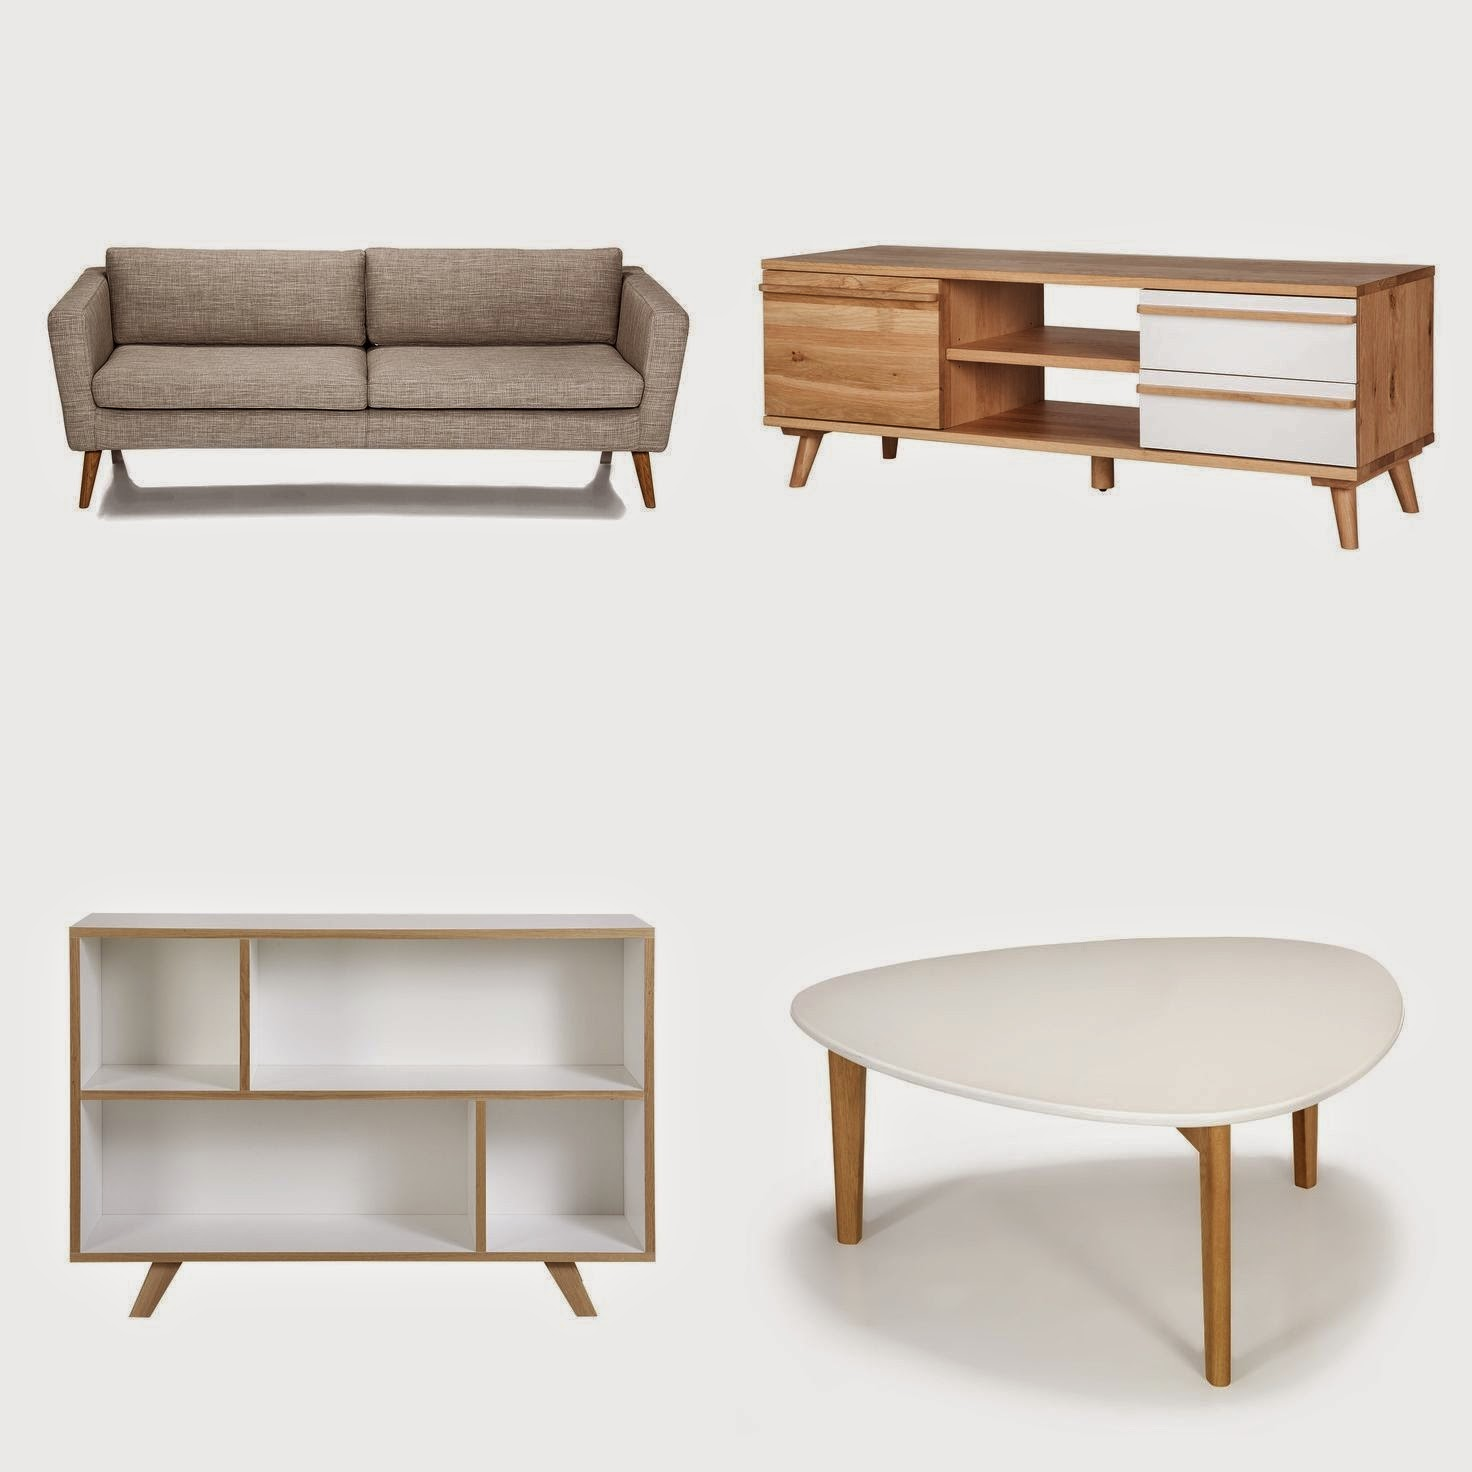 L 39 esprit scandinave chez alin a bull 39 elodie for Meuble salon scandinave